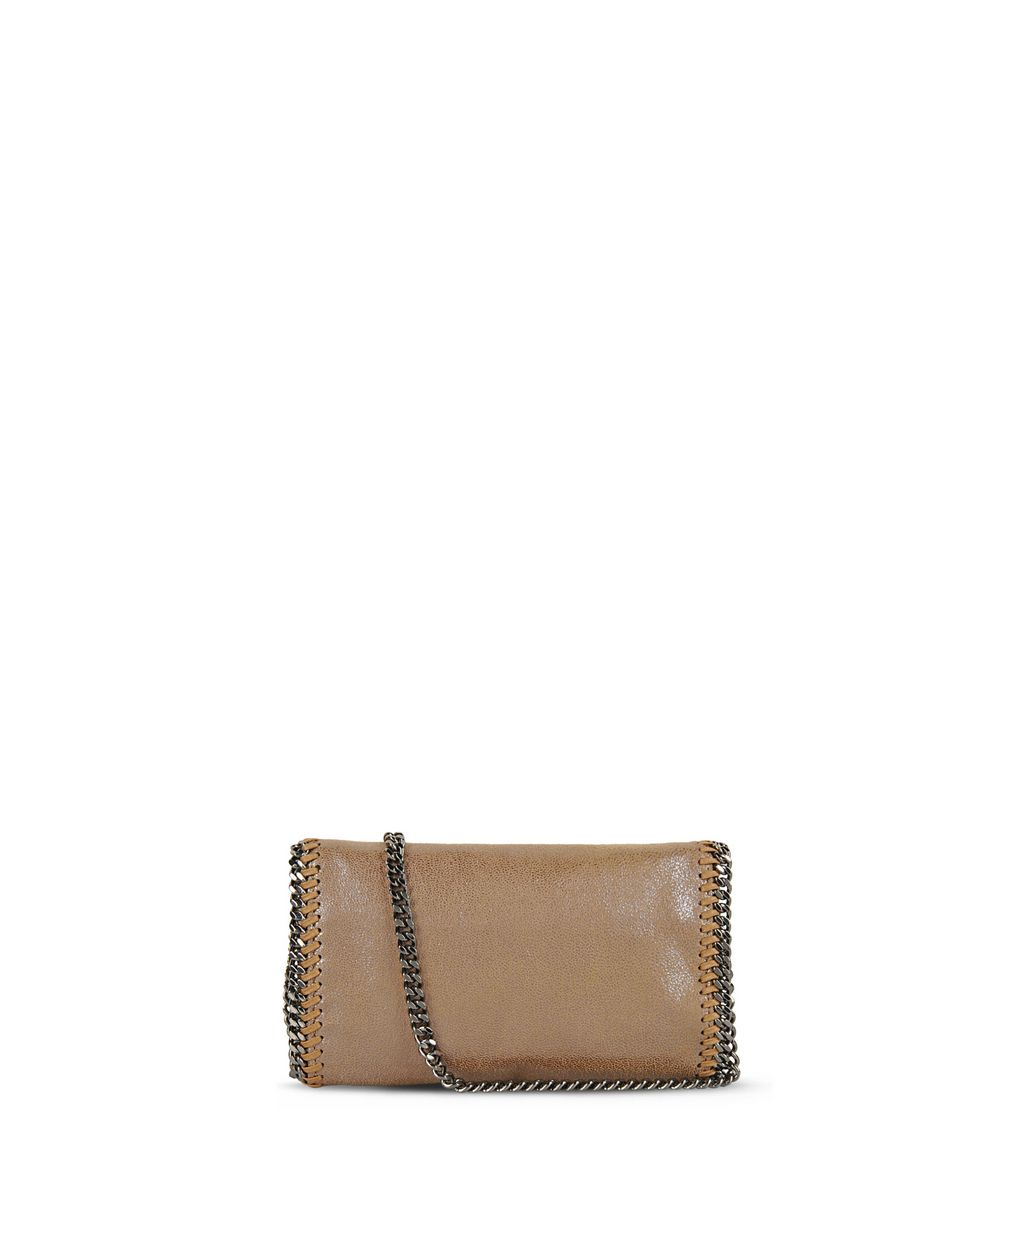 Falabella Chamois Cross Body Bag  - STELLA MCCARTNEY